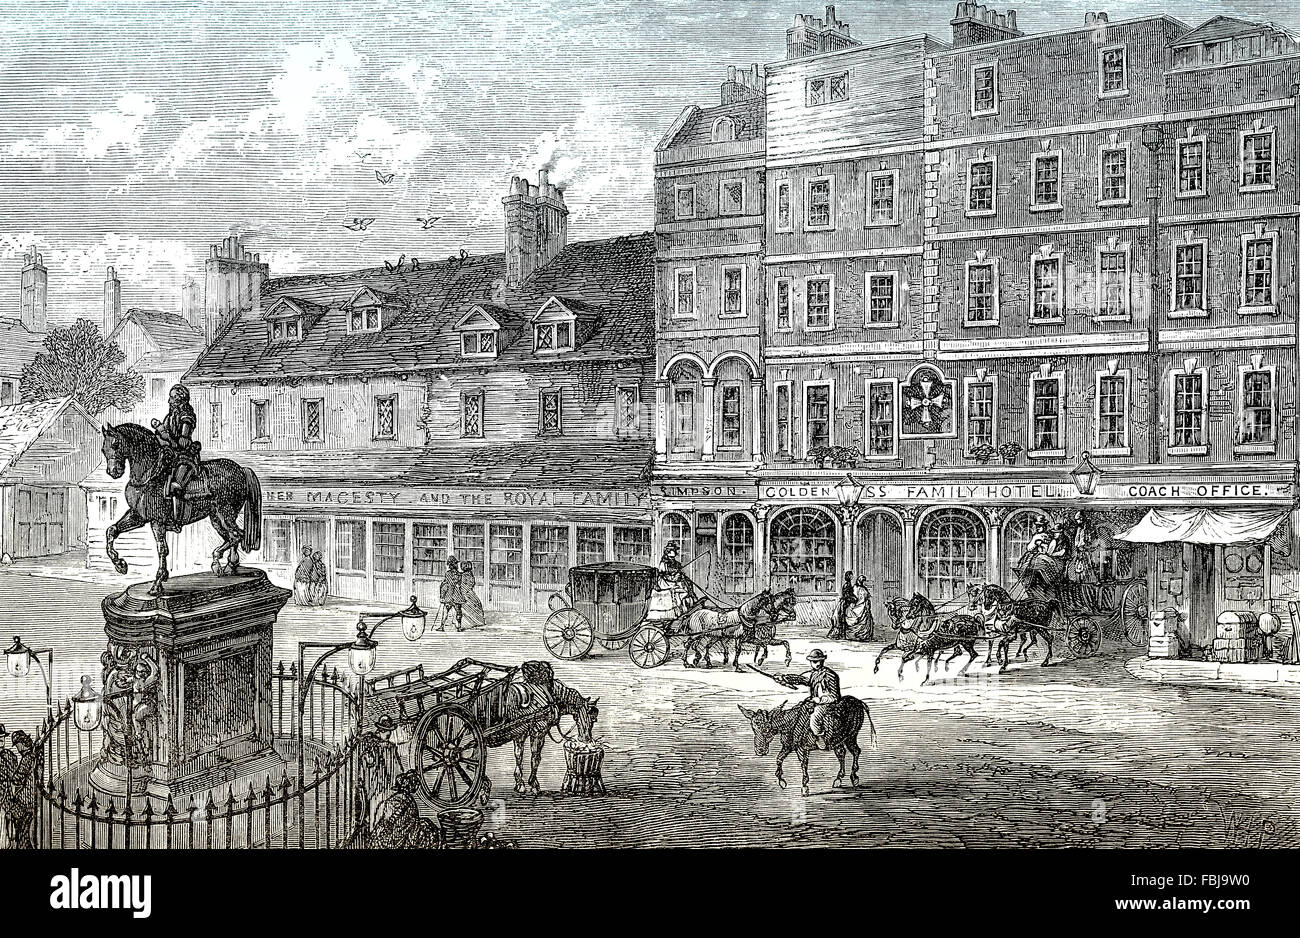 Charing Cross Hotel, 1750, London, England